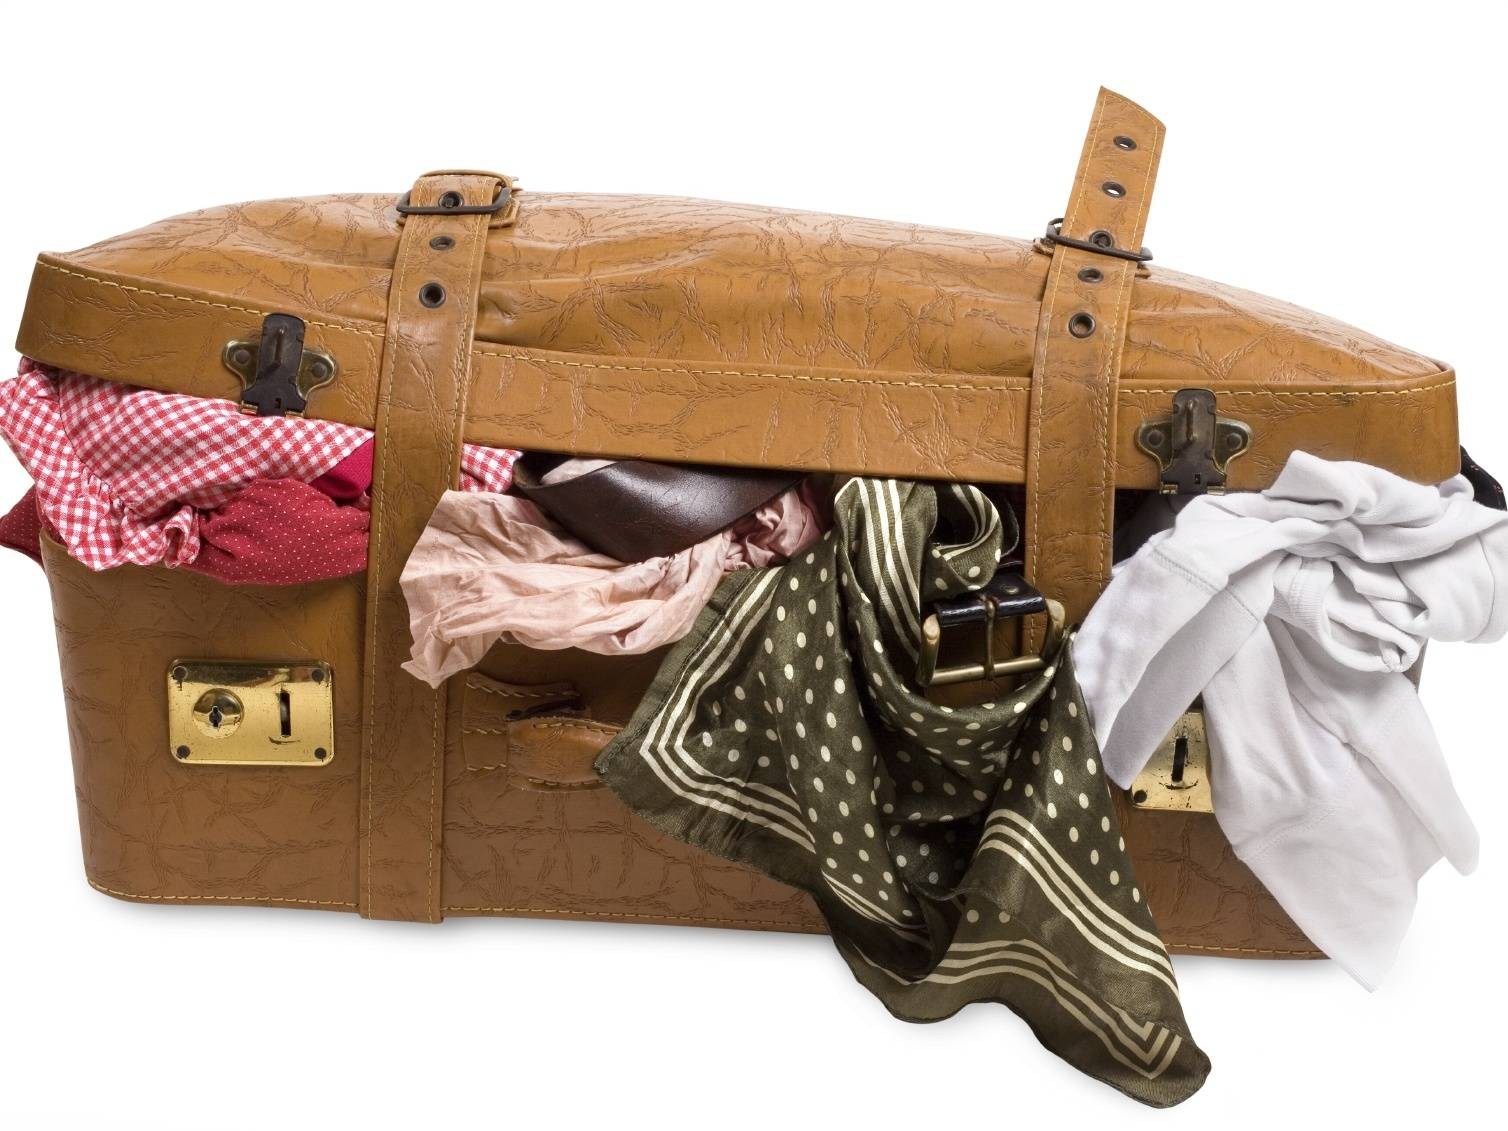 28 incredibly useful packing hacks